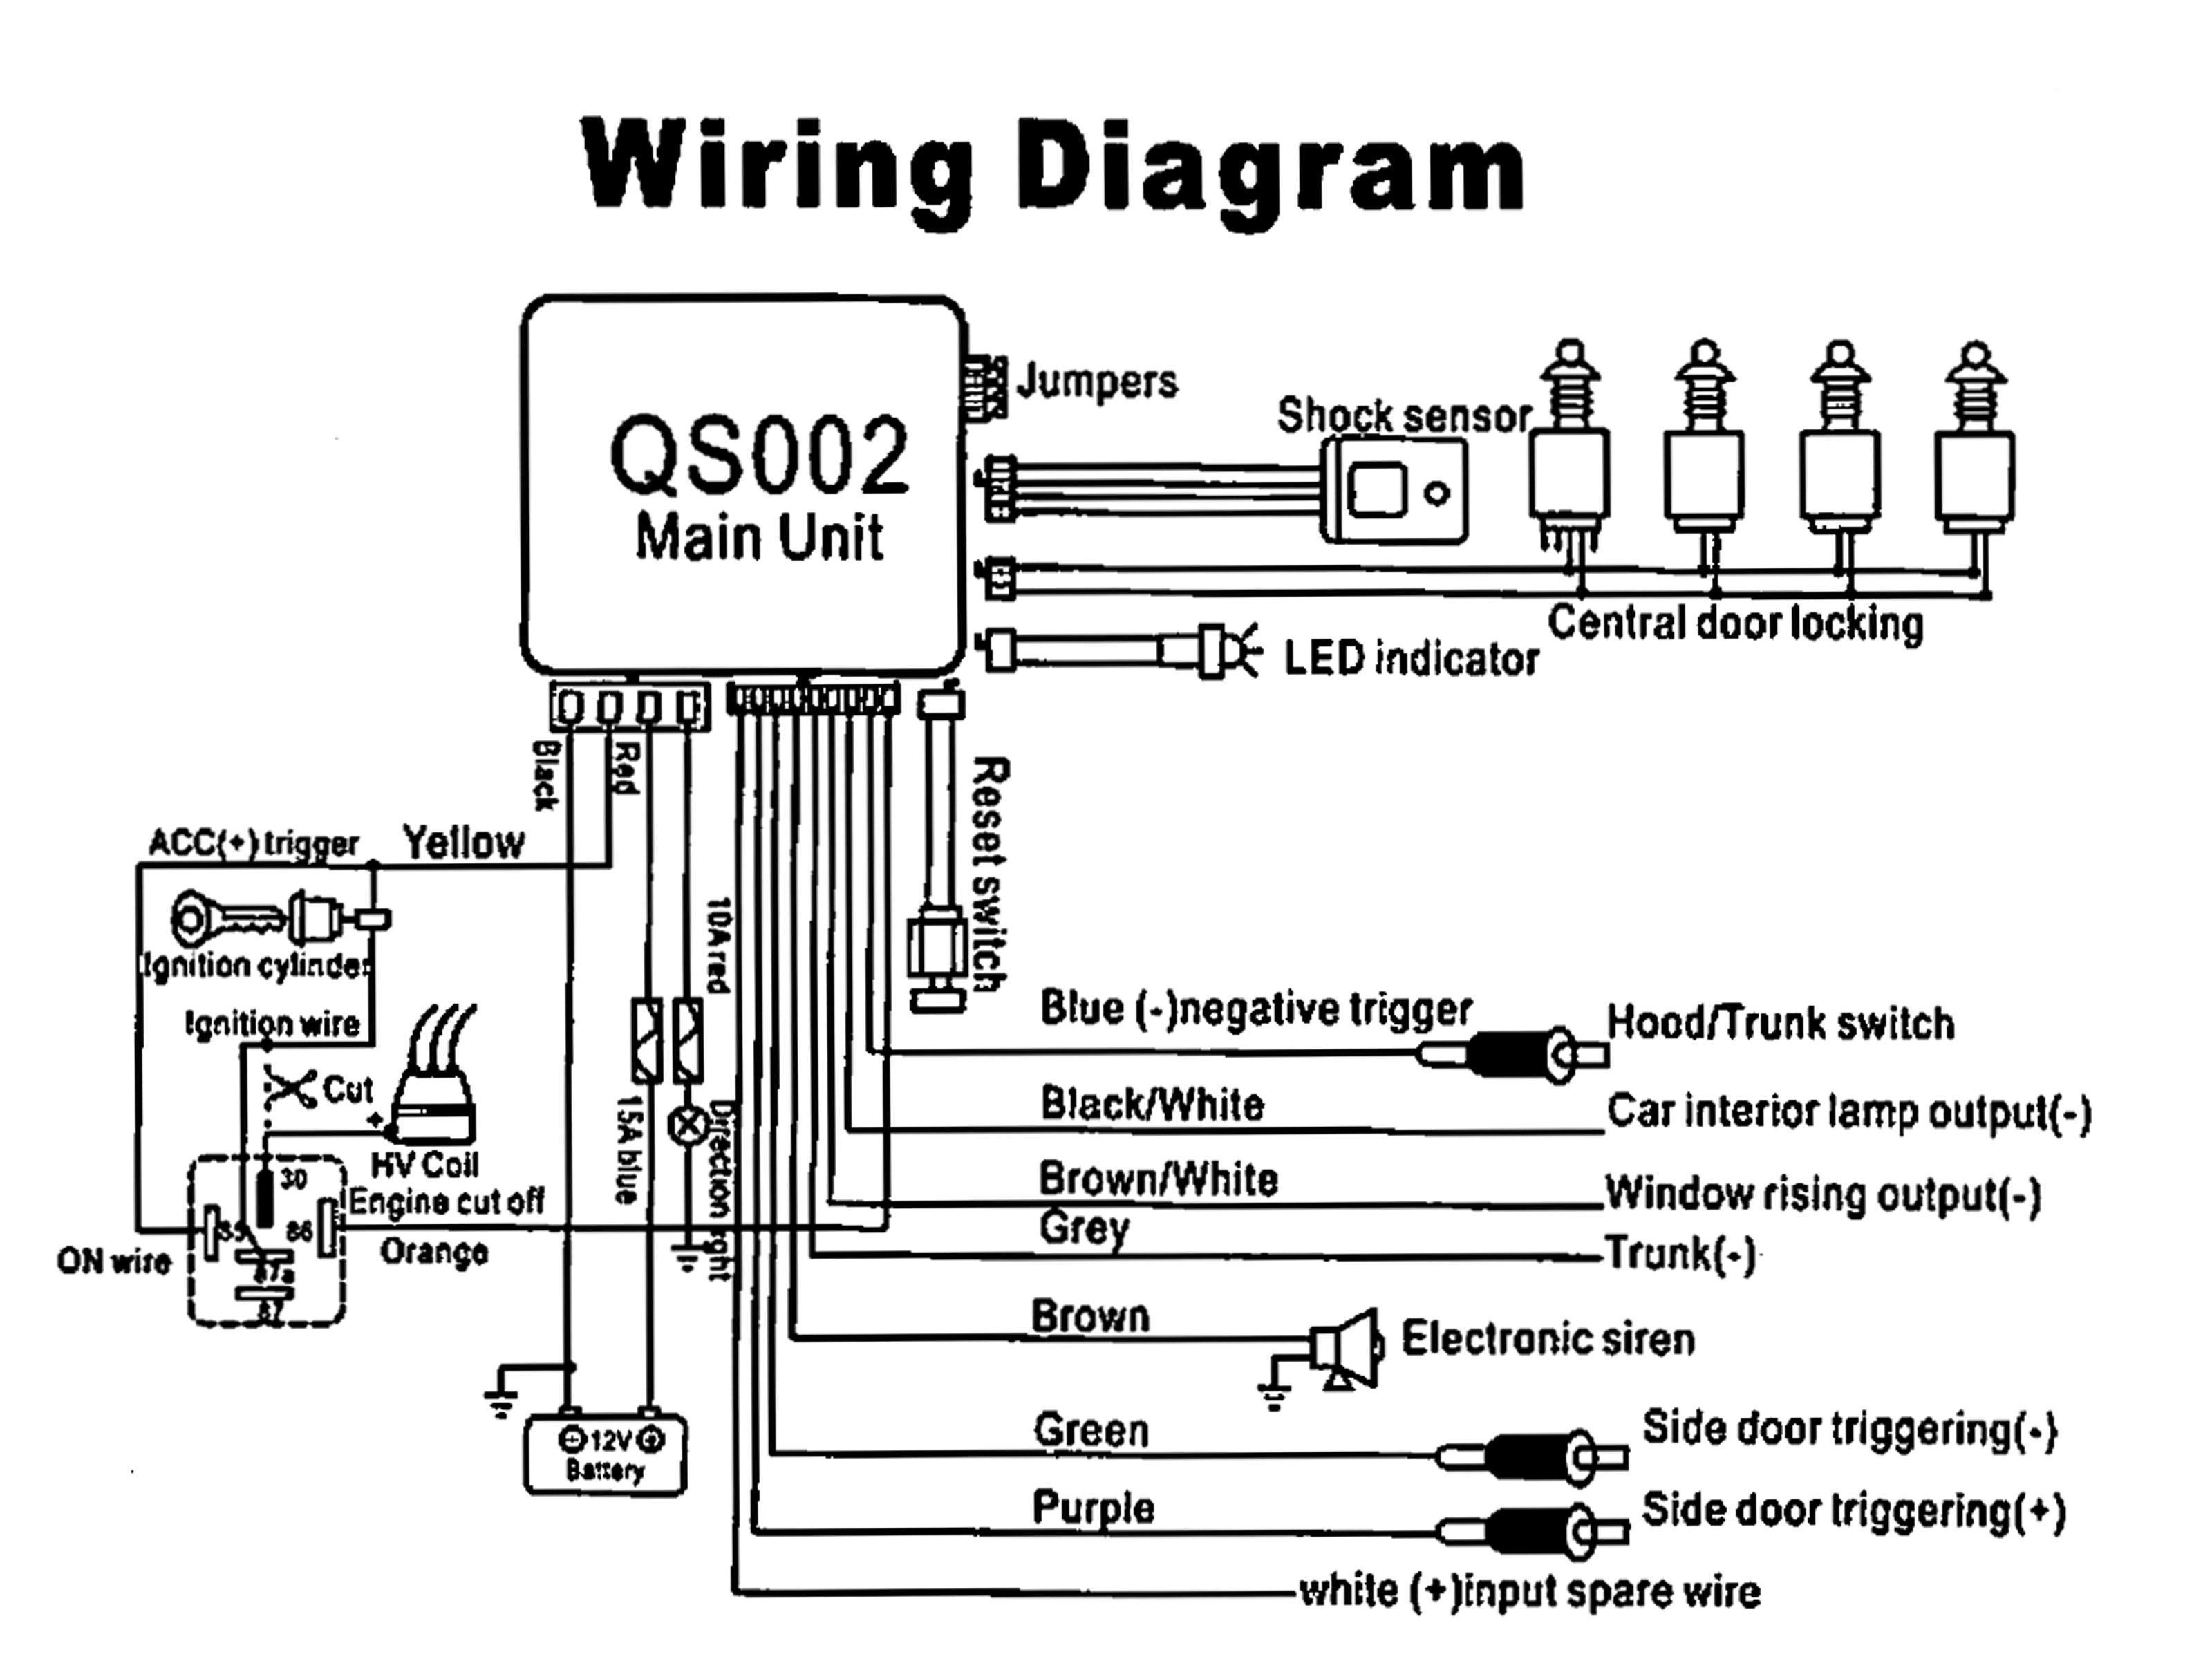 DIAGRAM] Crimestopper Car Alarm Wiring Diagram FULL Version HD Quality Wiring  Diagram - PIEDIAGRAM.SIGGY2000.DEpiediagram.siggy2000.de